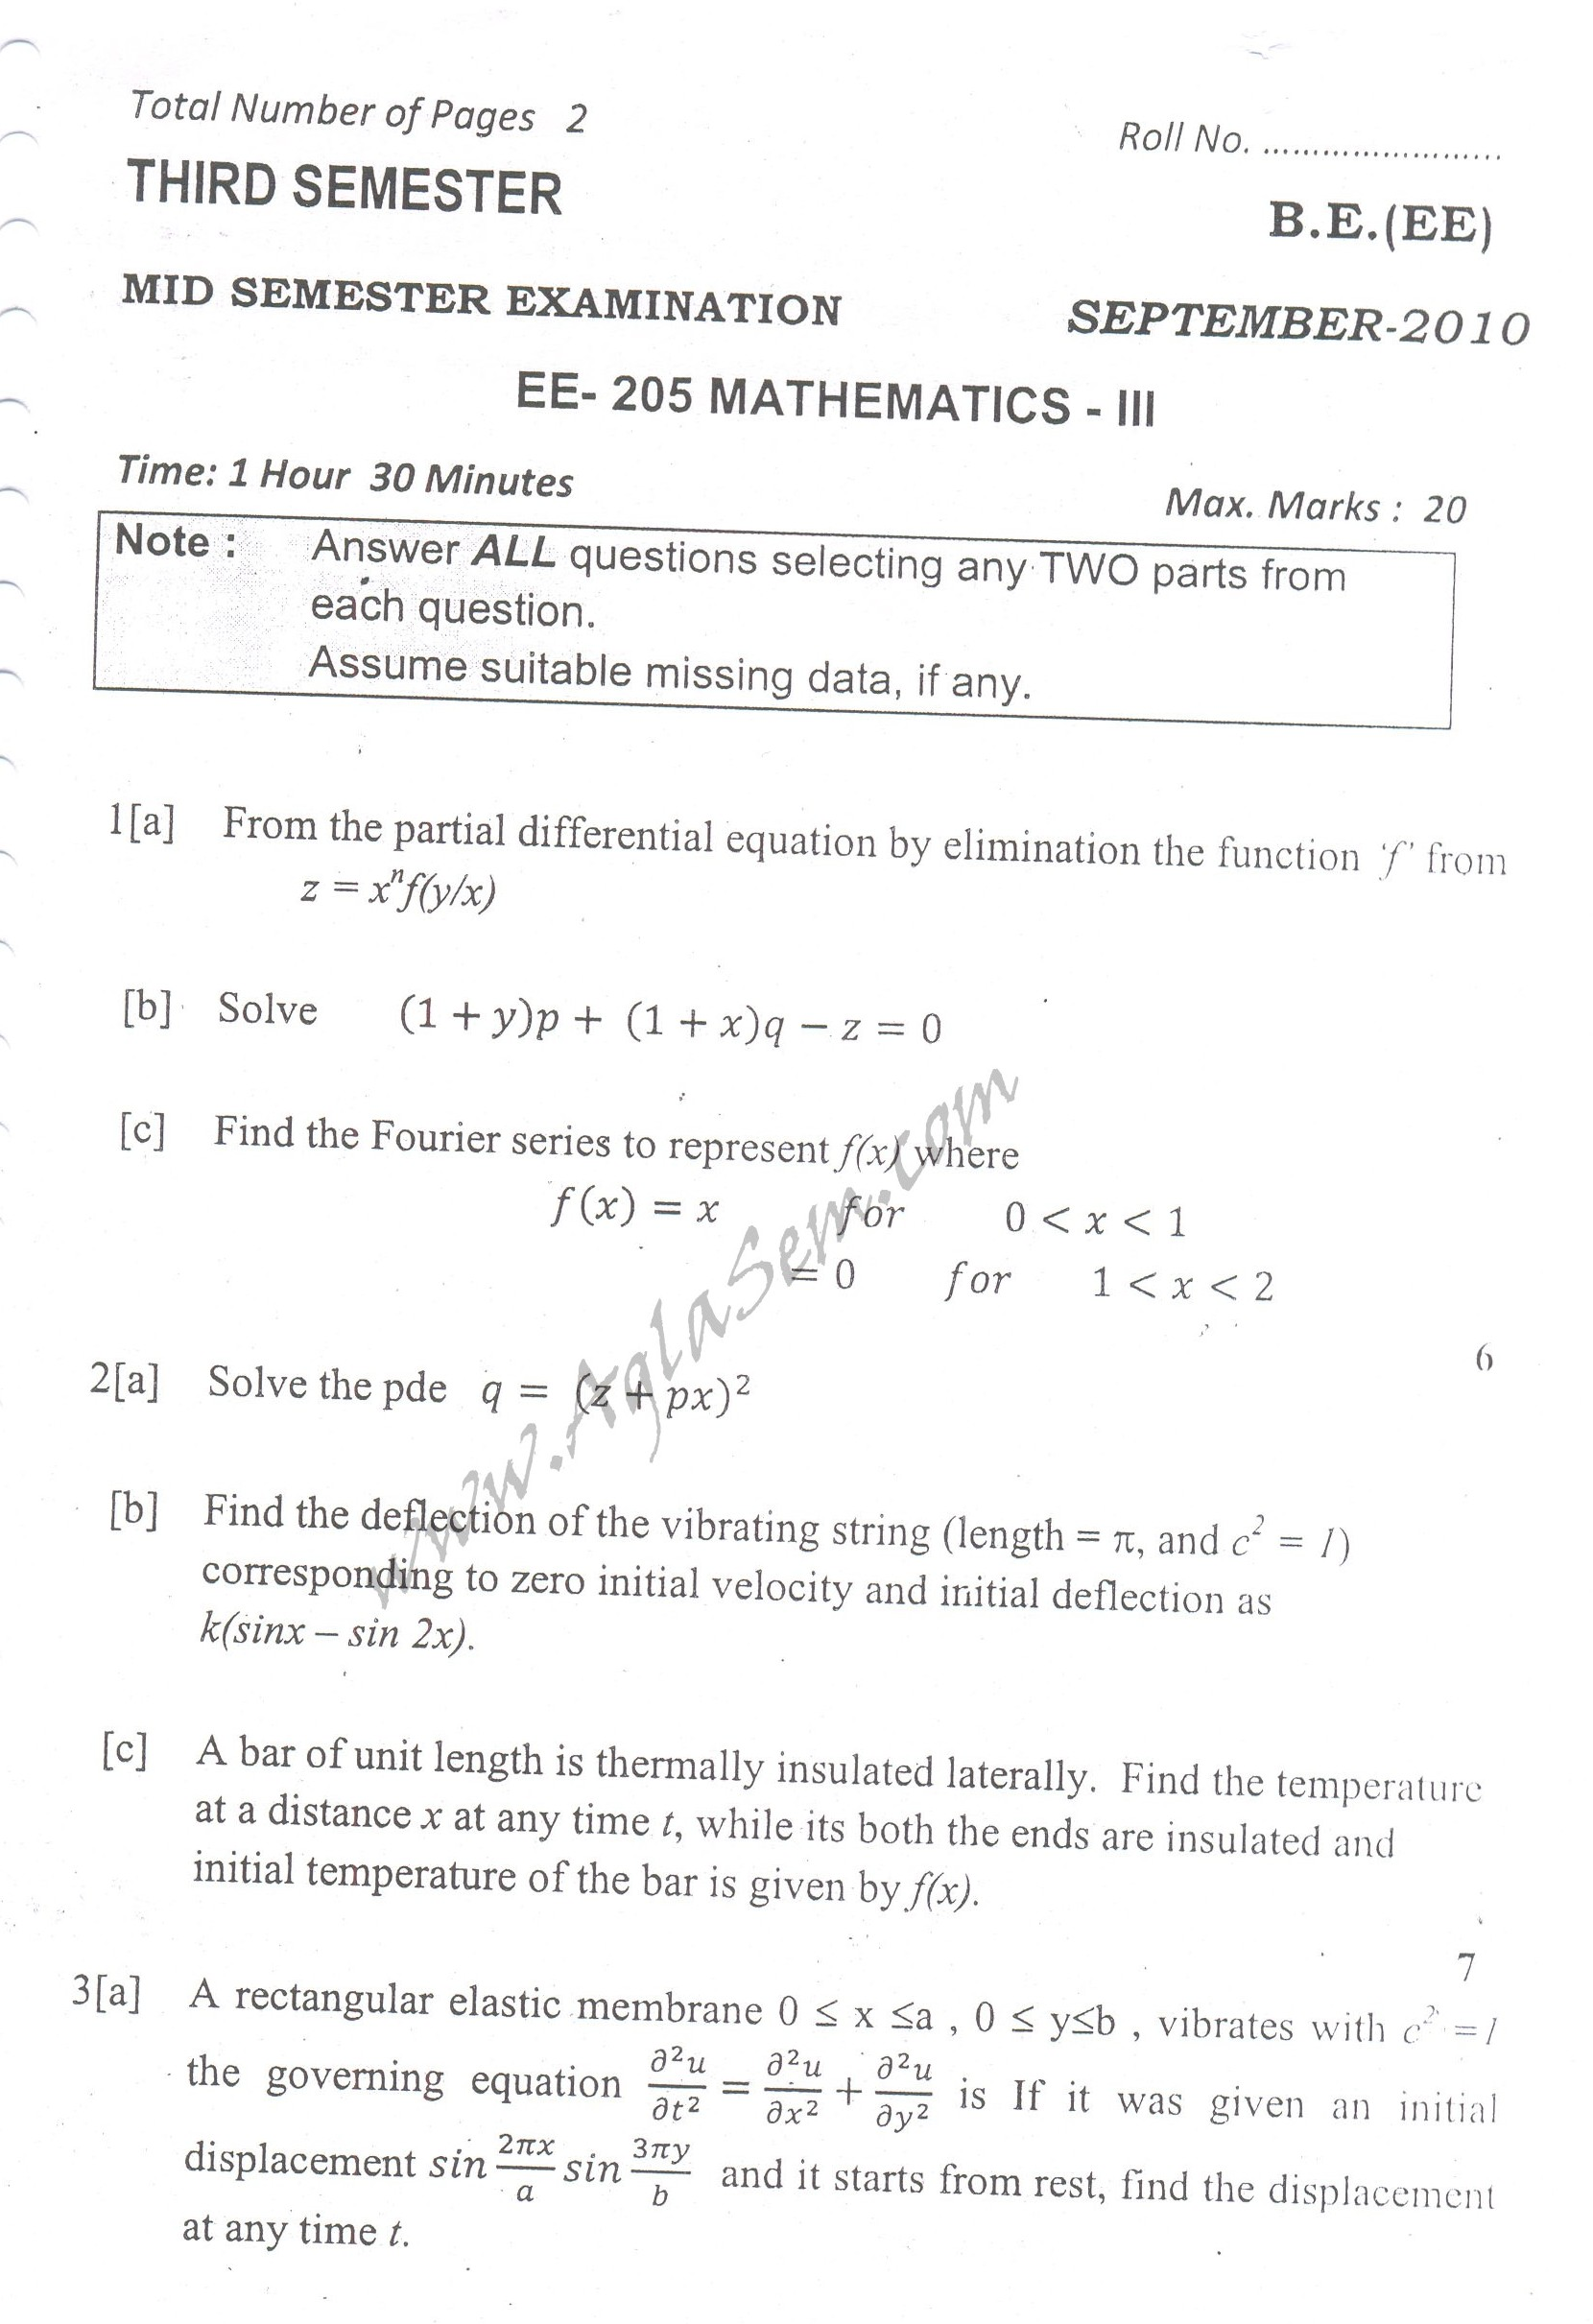 DTU Question Papers 2010 – 3 Semester - Mid Sem - EE-205